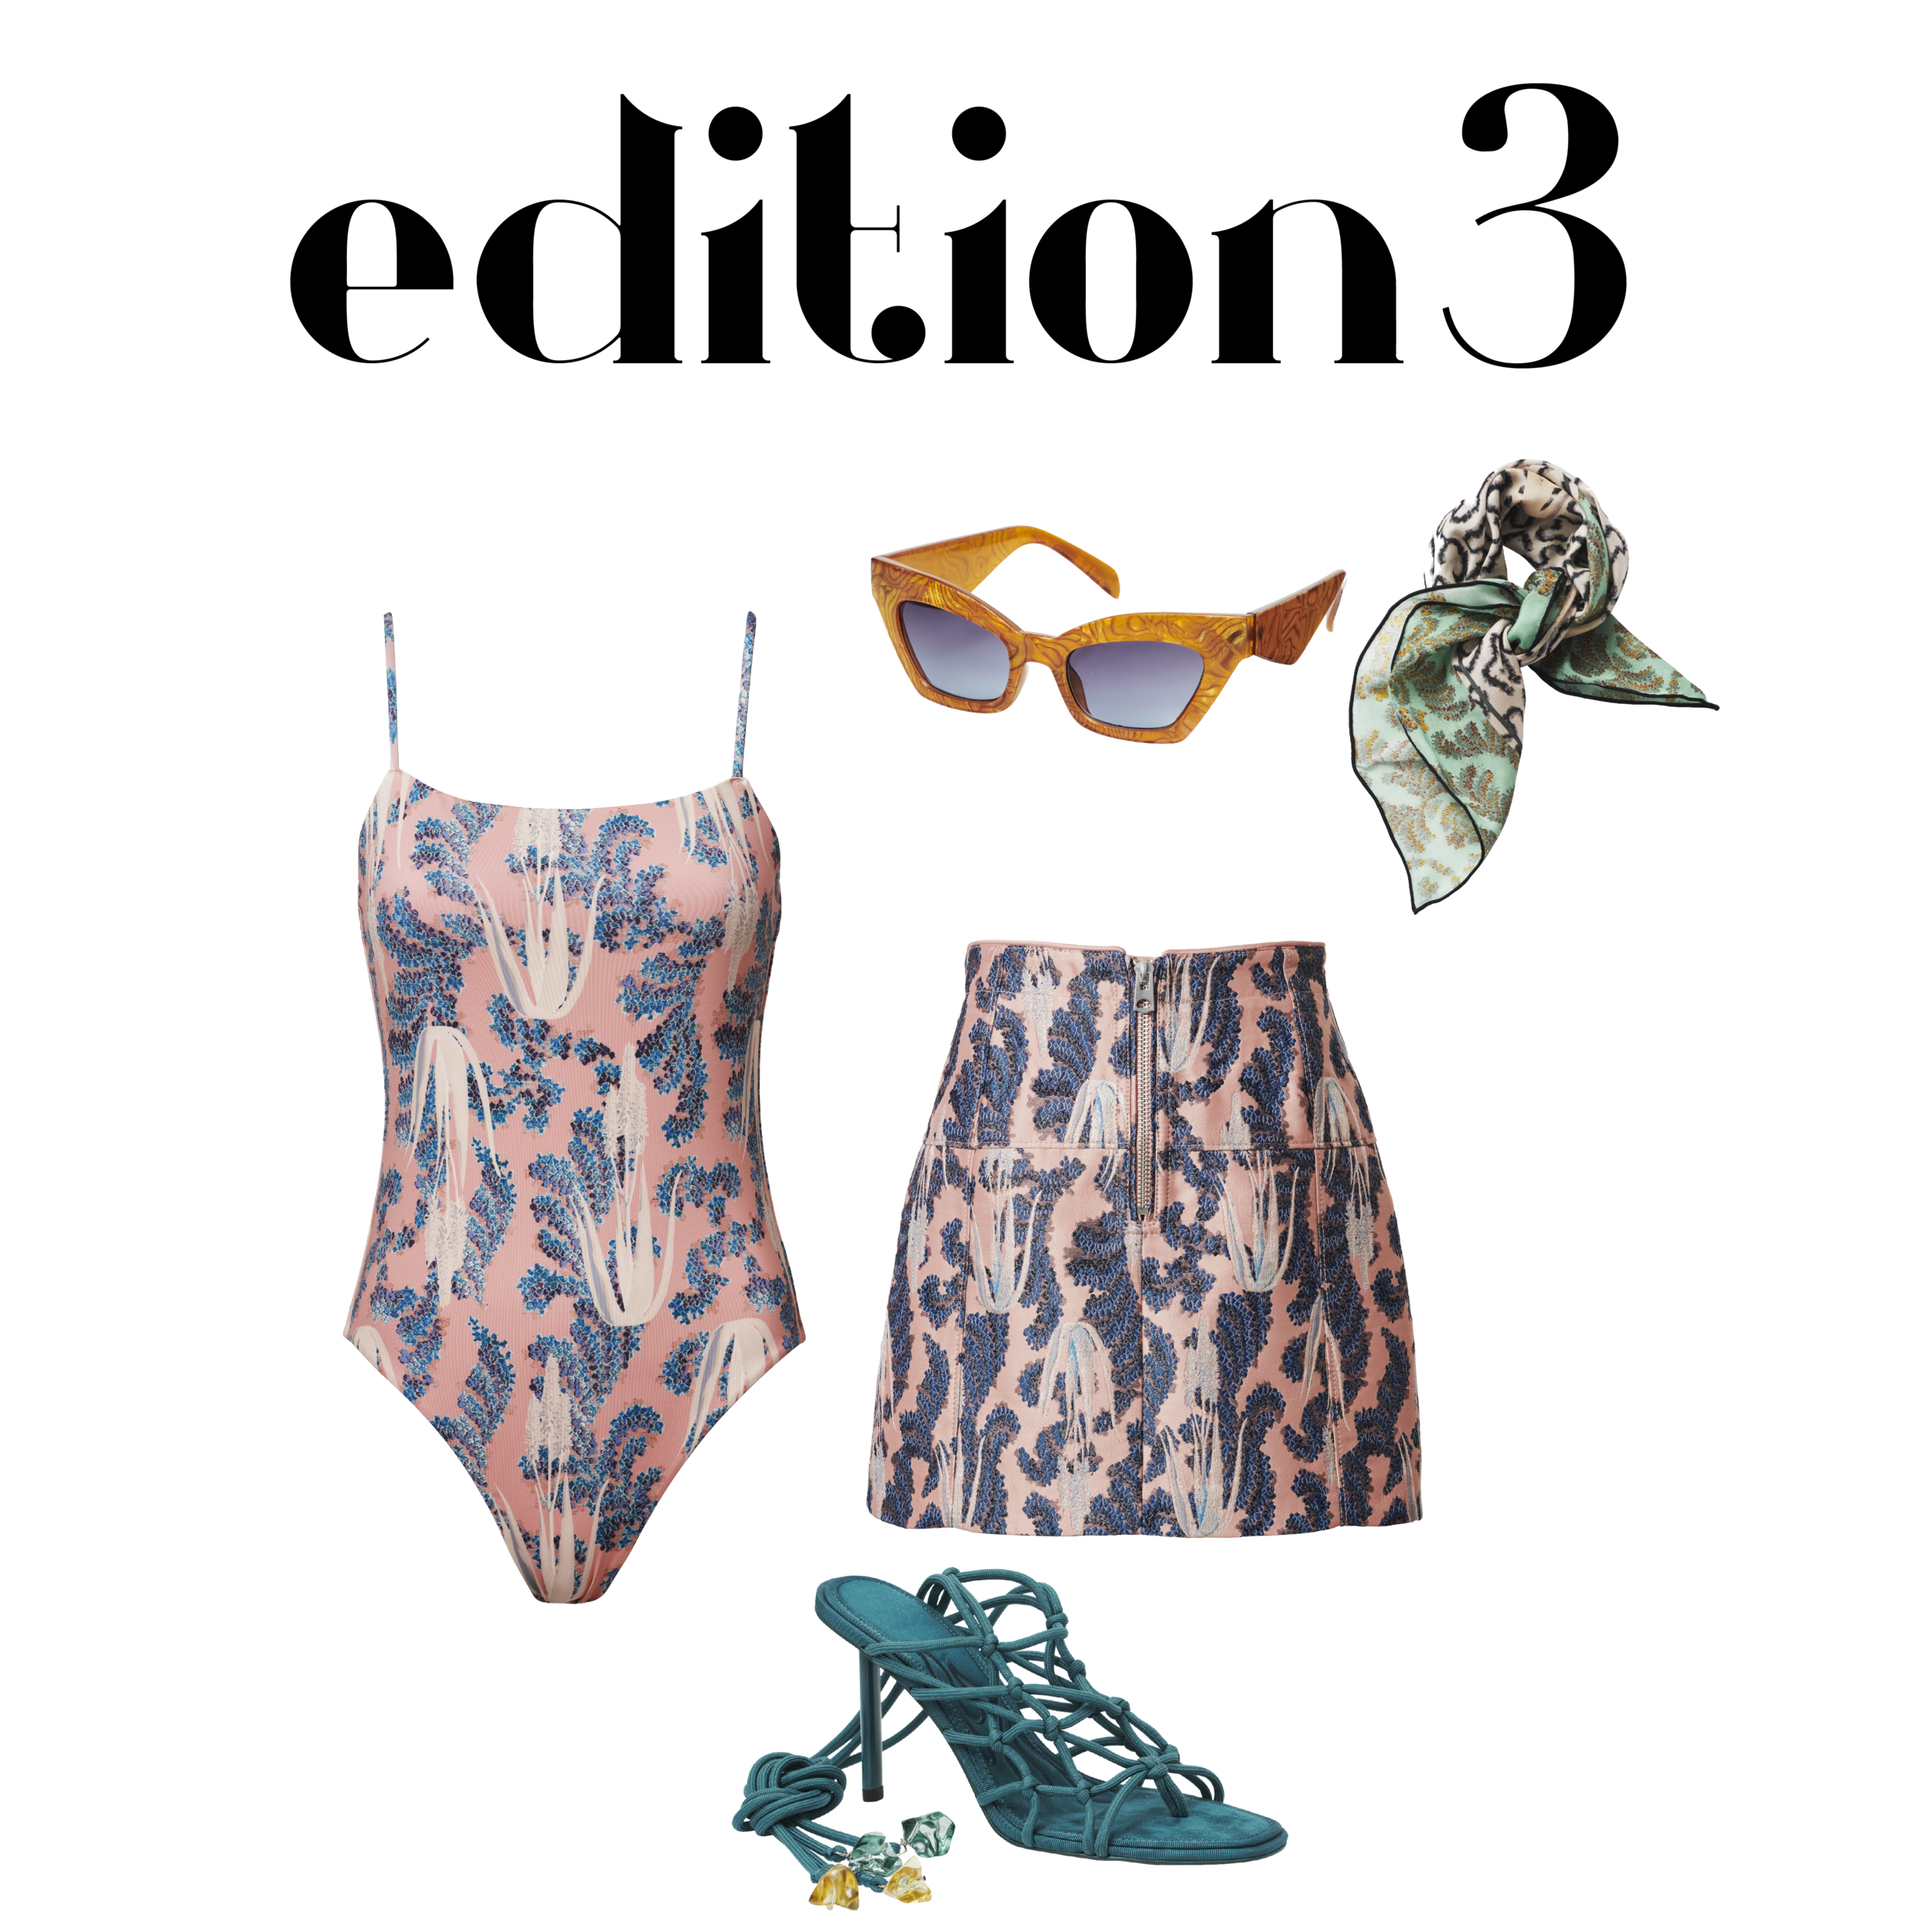 Small Scarf (Pink) - RM 84.95 Sunglasses - RM 109.95 Printed Skirt - RM 279.95 Printed Swimsuit - RM 184.95 (2) Strappy Heels - RM 374.95